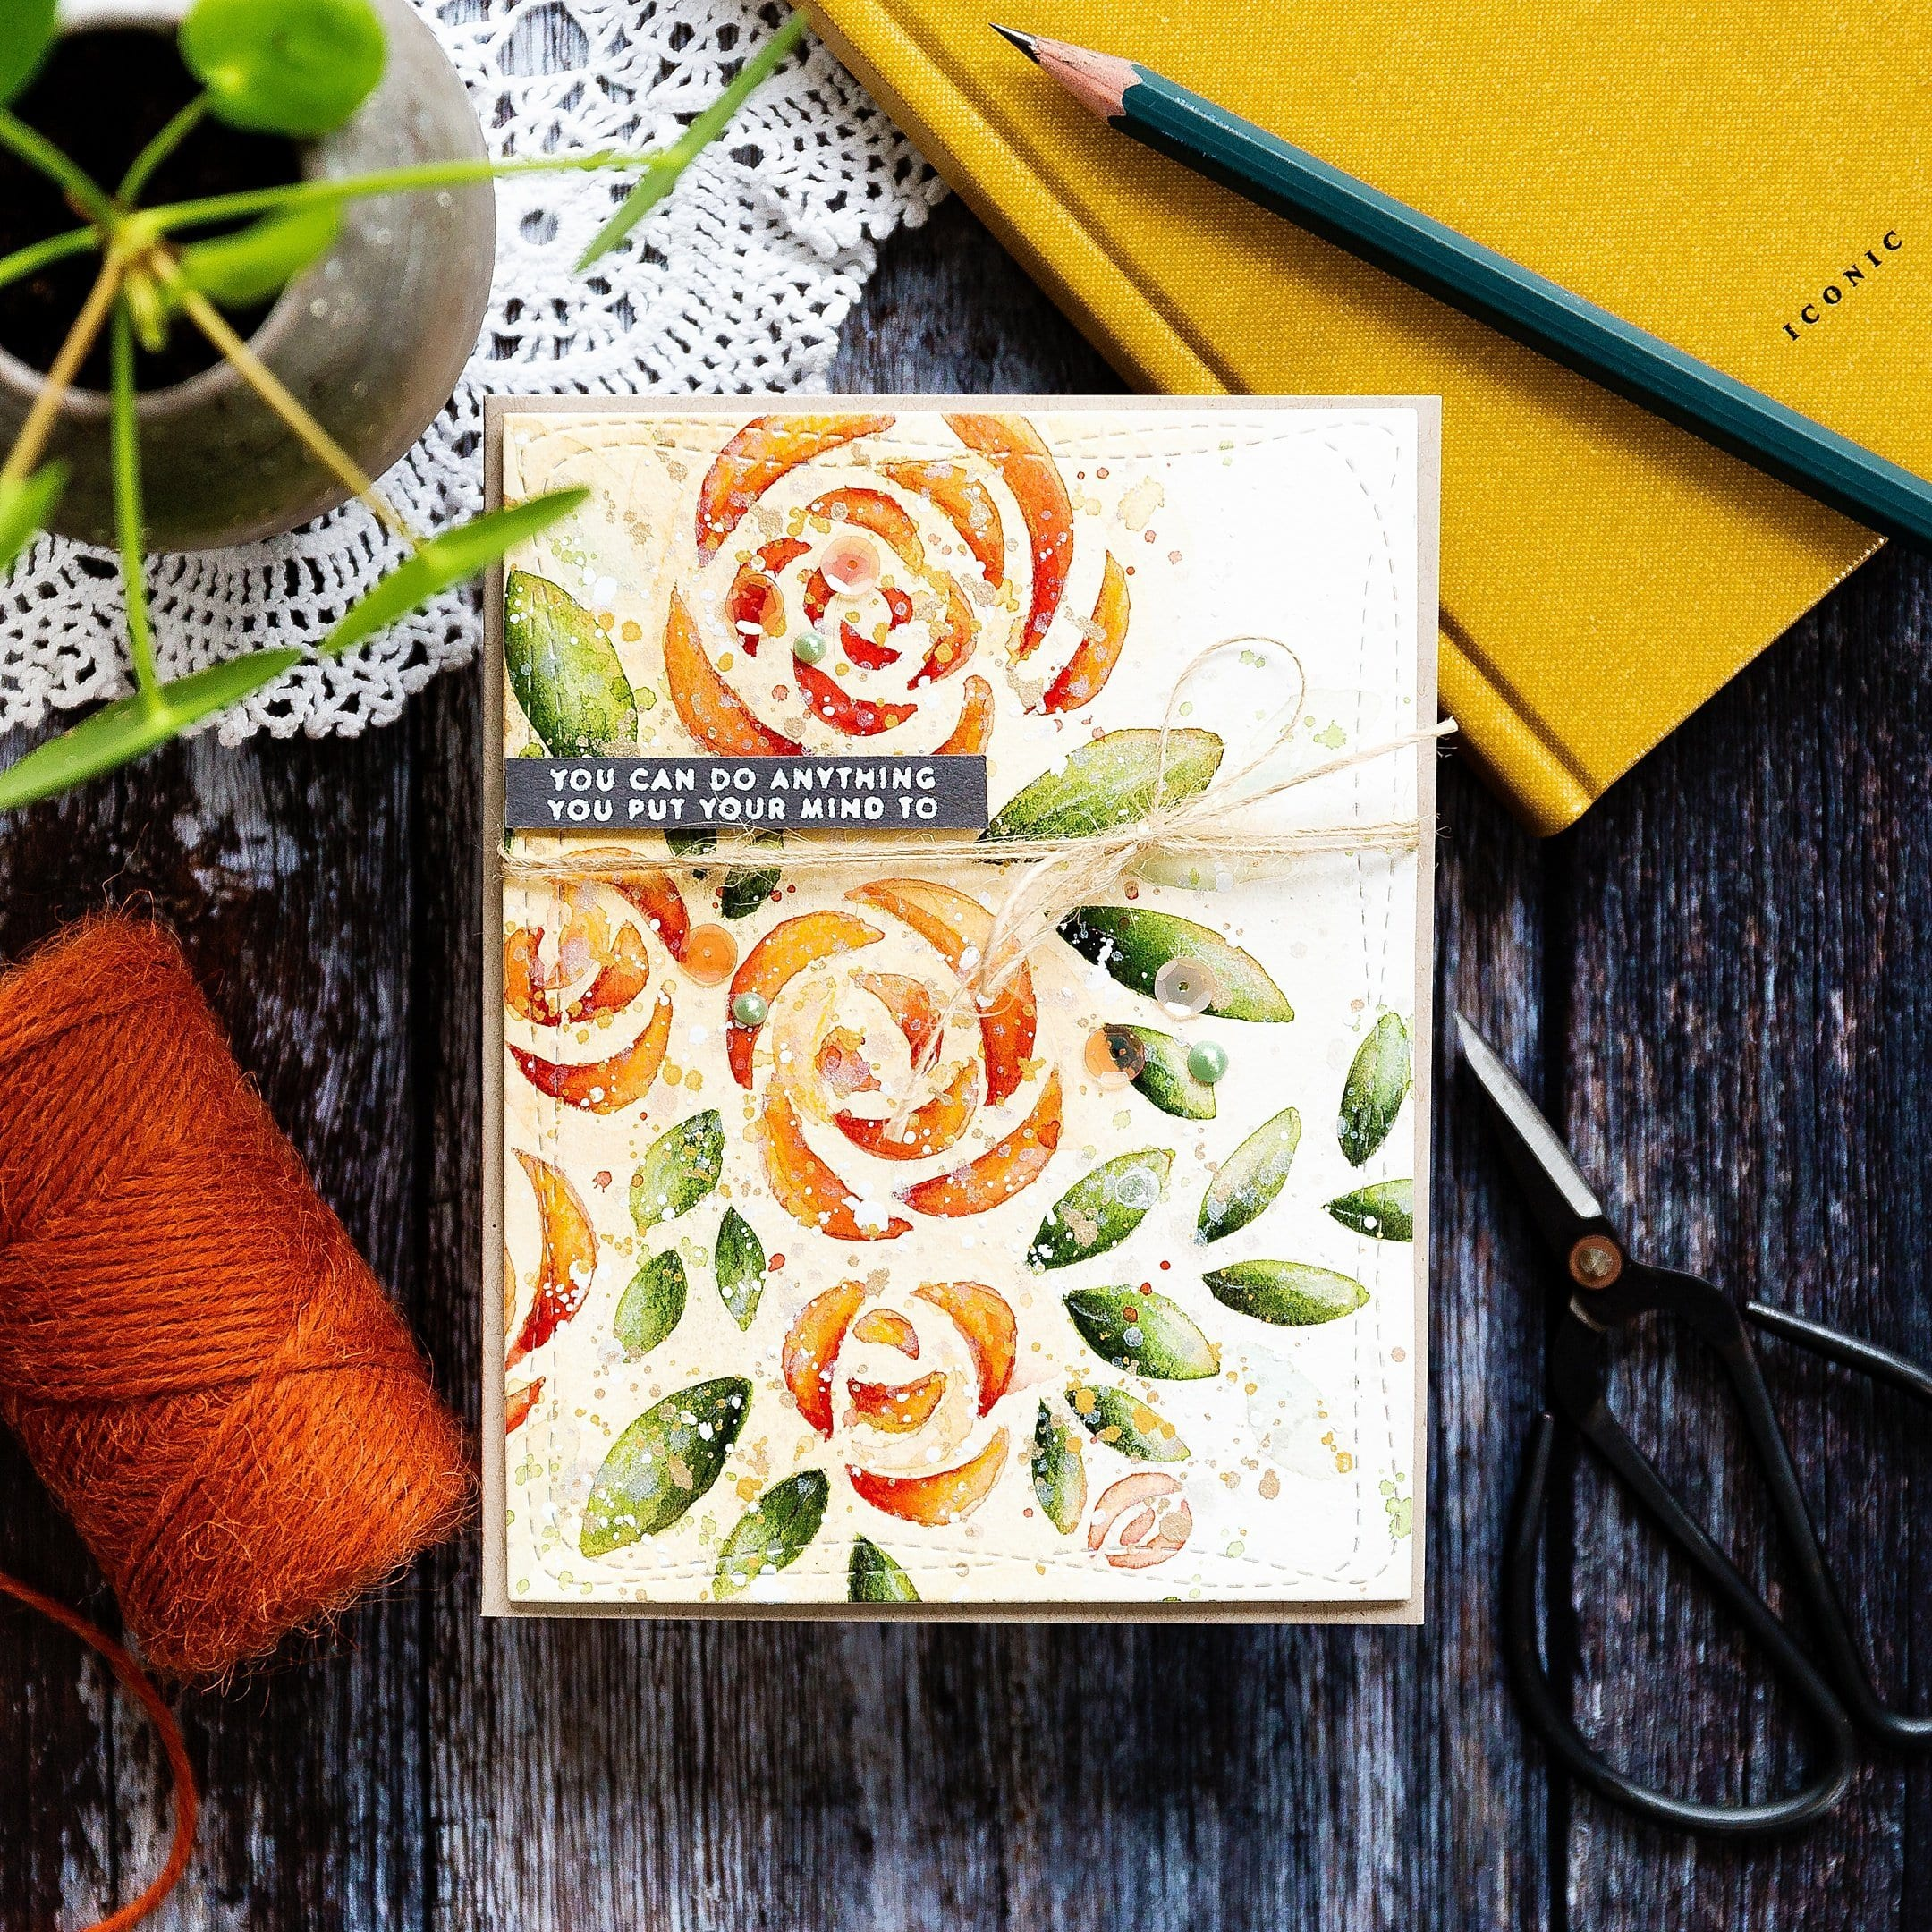 Using a stencil with watercolours. Floral, handmade card by Debby Hughes using supplies from Simon Says Stamp. Find out more here: https://limedoodledesign.com/2019/05/video-using-watercolour-with-a-stencil/